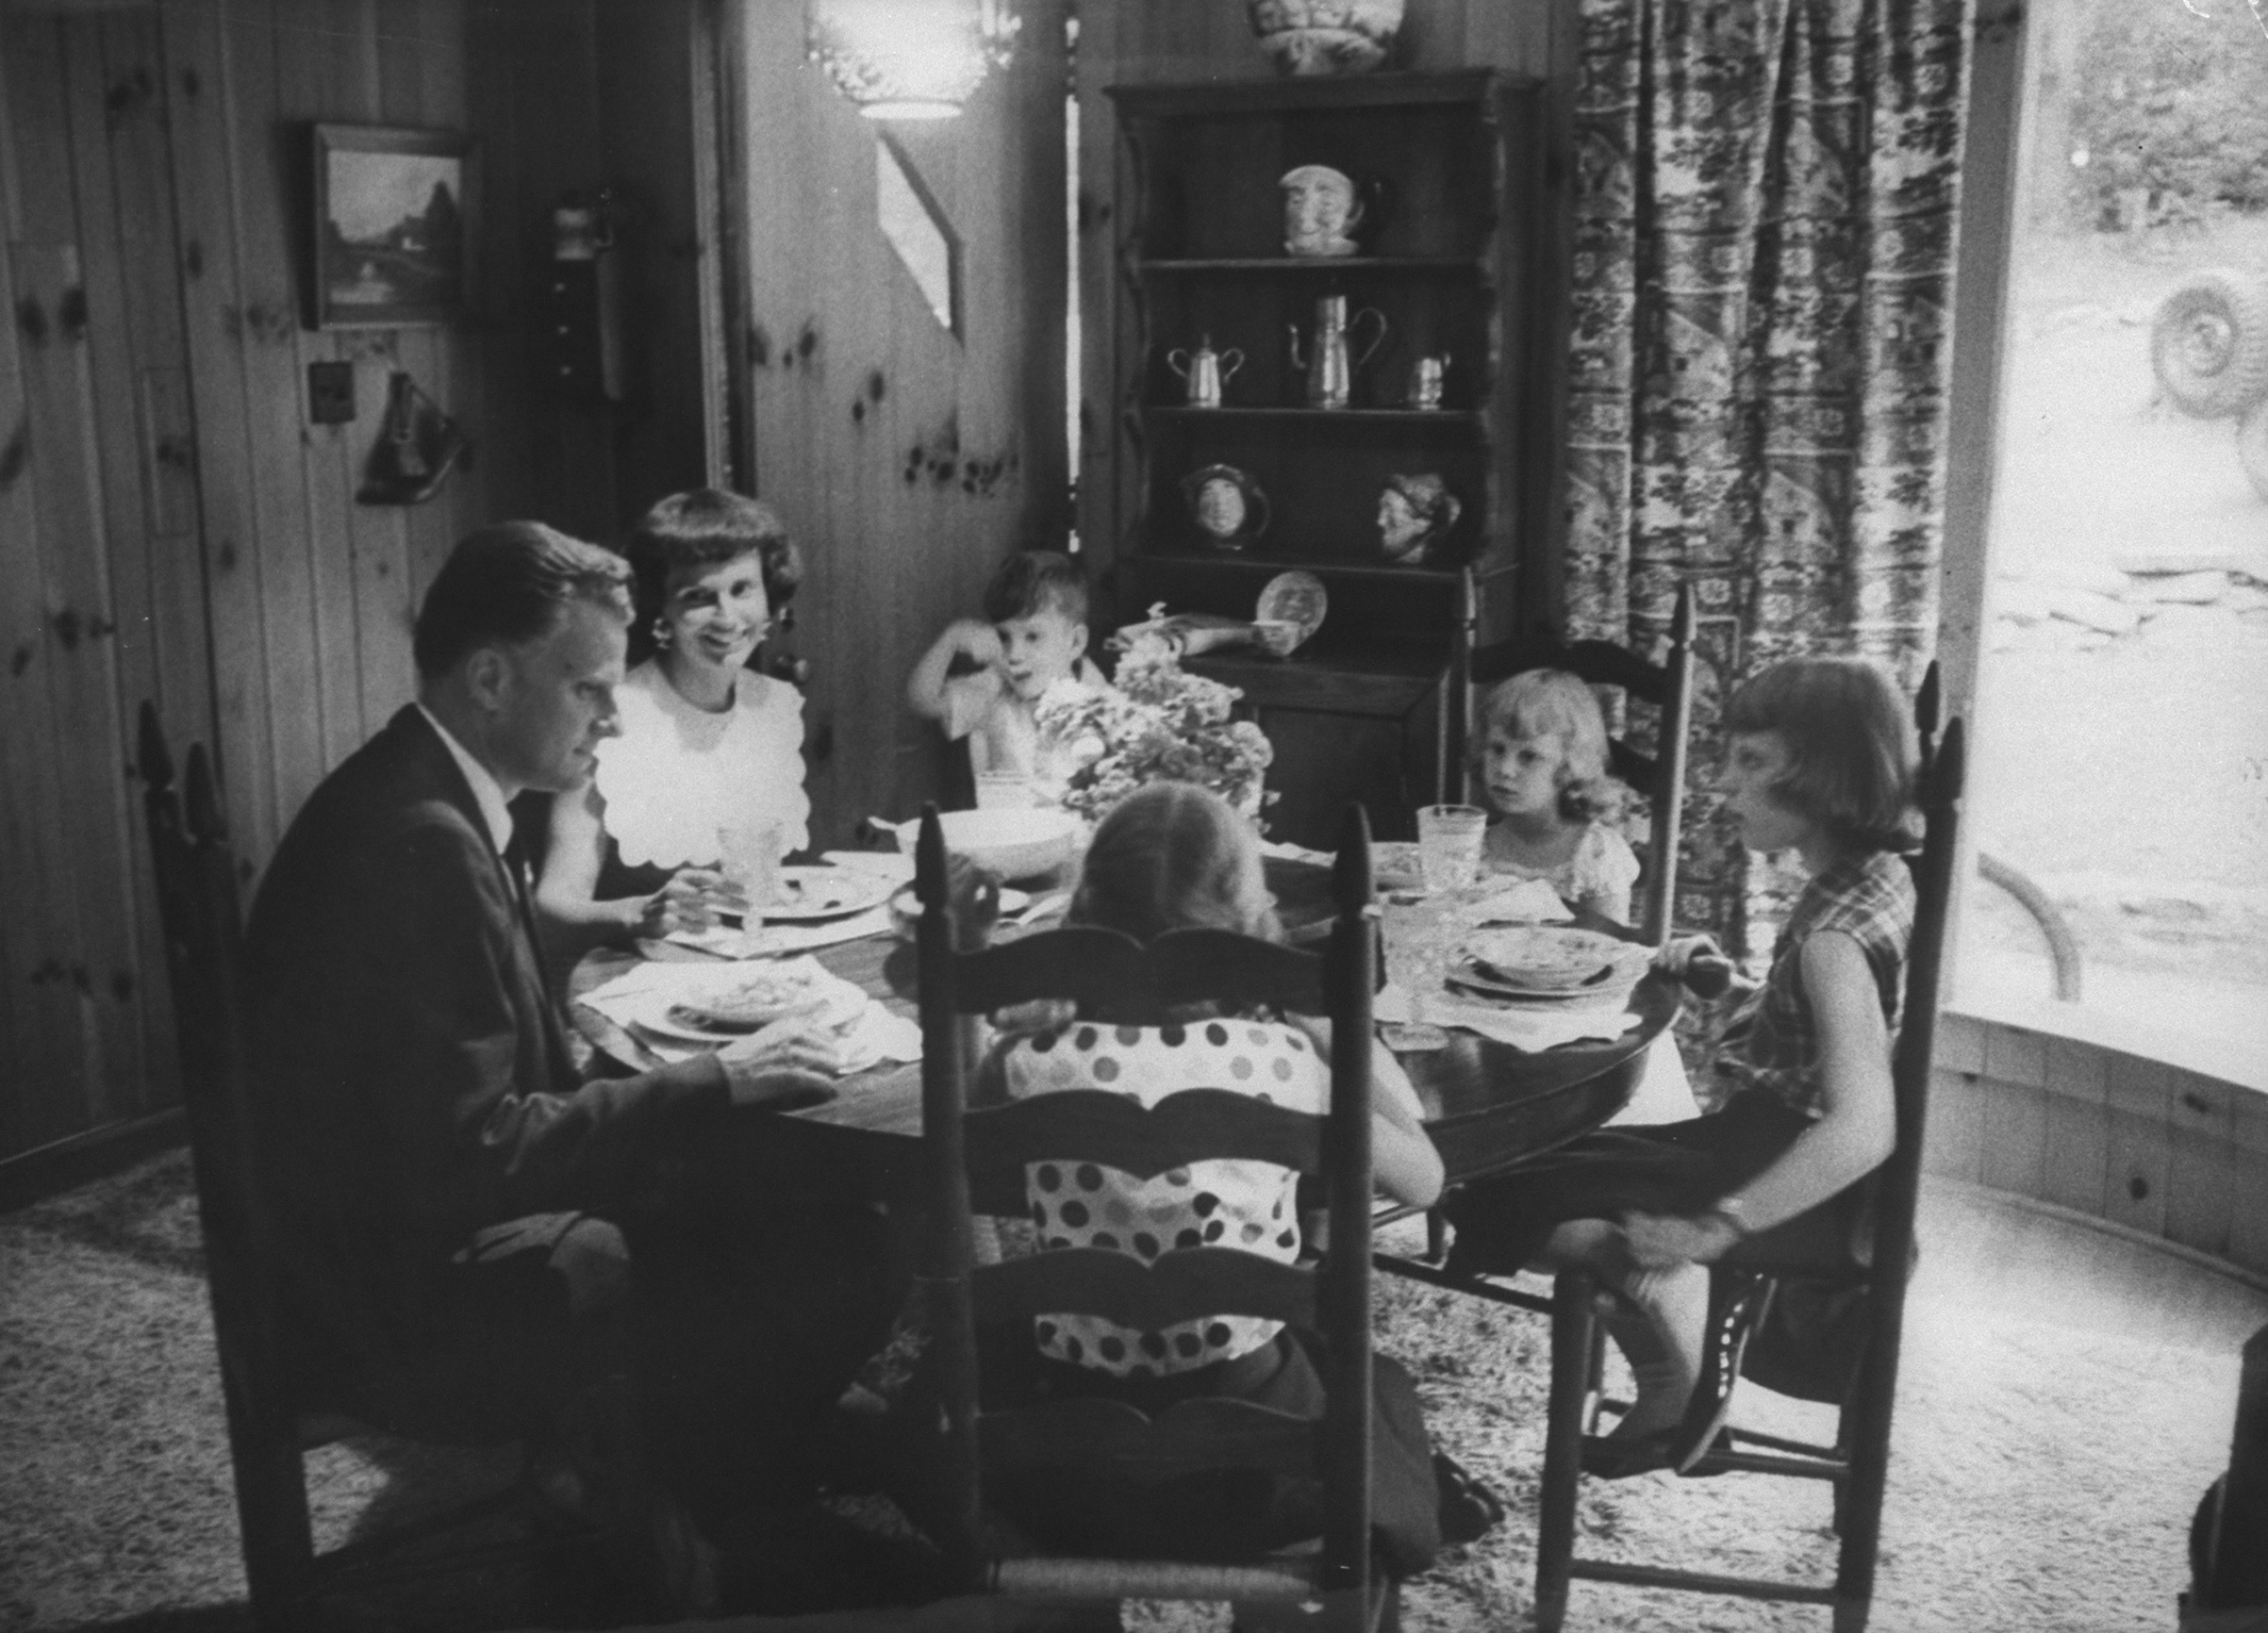 Graham with his wife Ruth and four of their children, including Franklin, in 1955